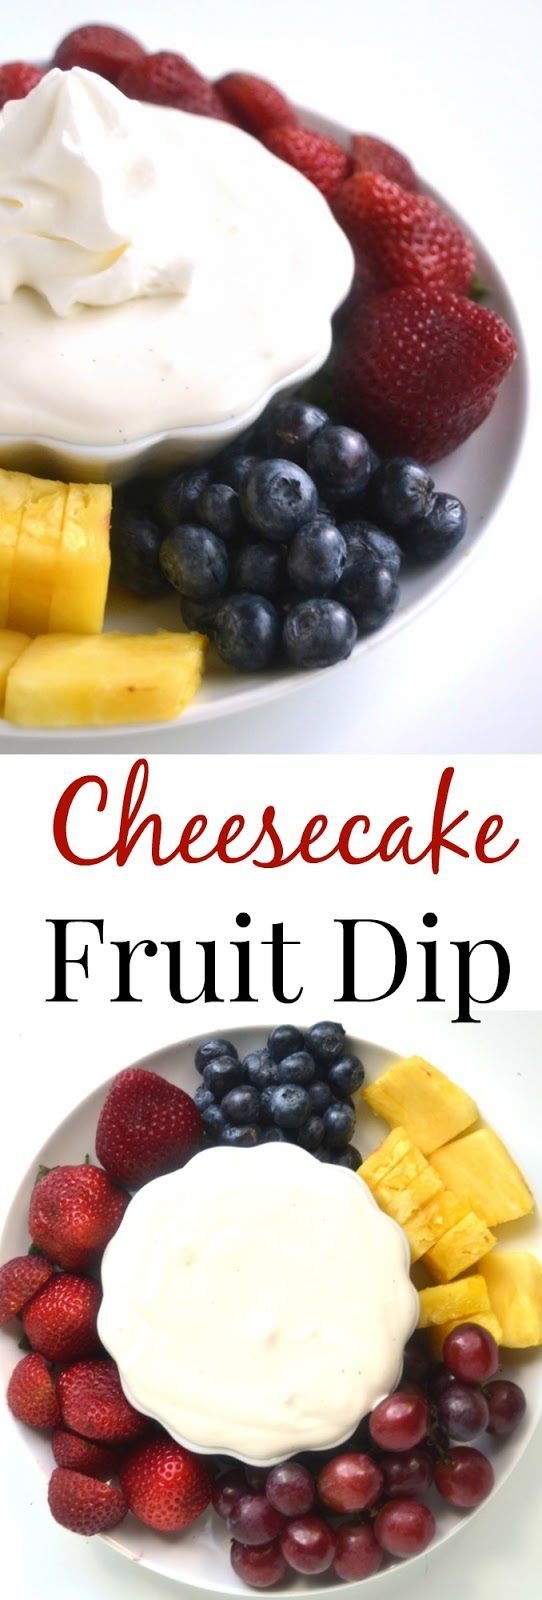 Cheesecake Fruit Dip has just 5 ingredients, takes 5 minutes to make and is super creamy while being a light and healthy dip for your favorite fruits! www.nutritionistreviews.com #LetsCheese #ad